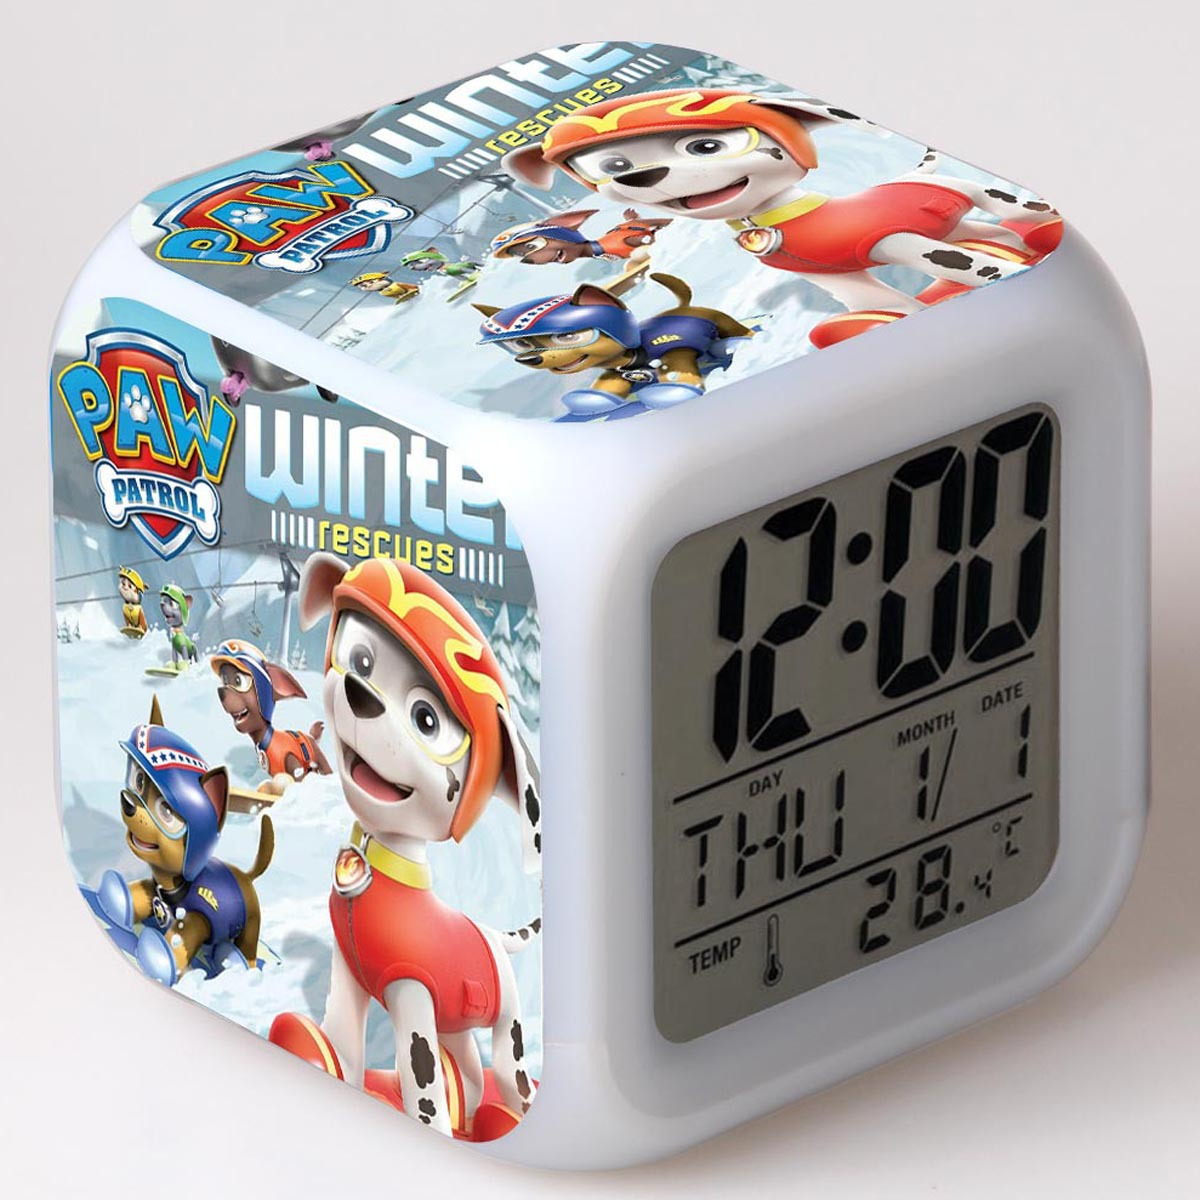 PAW PATROL Anime Luminous Alarm Clock Timer Toys For Children Luminous Table Lamp Digital Clock Party Home Decor Gifts For KidTo